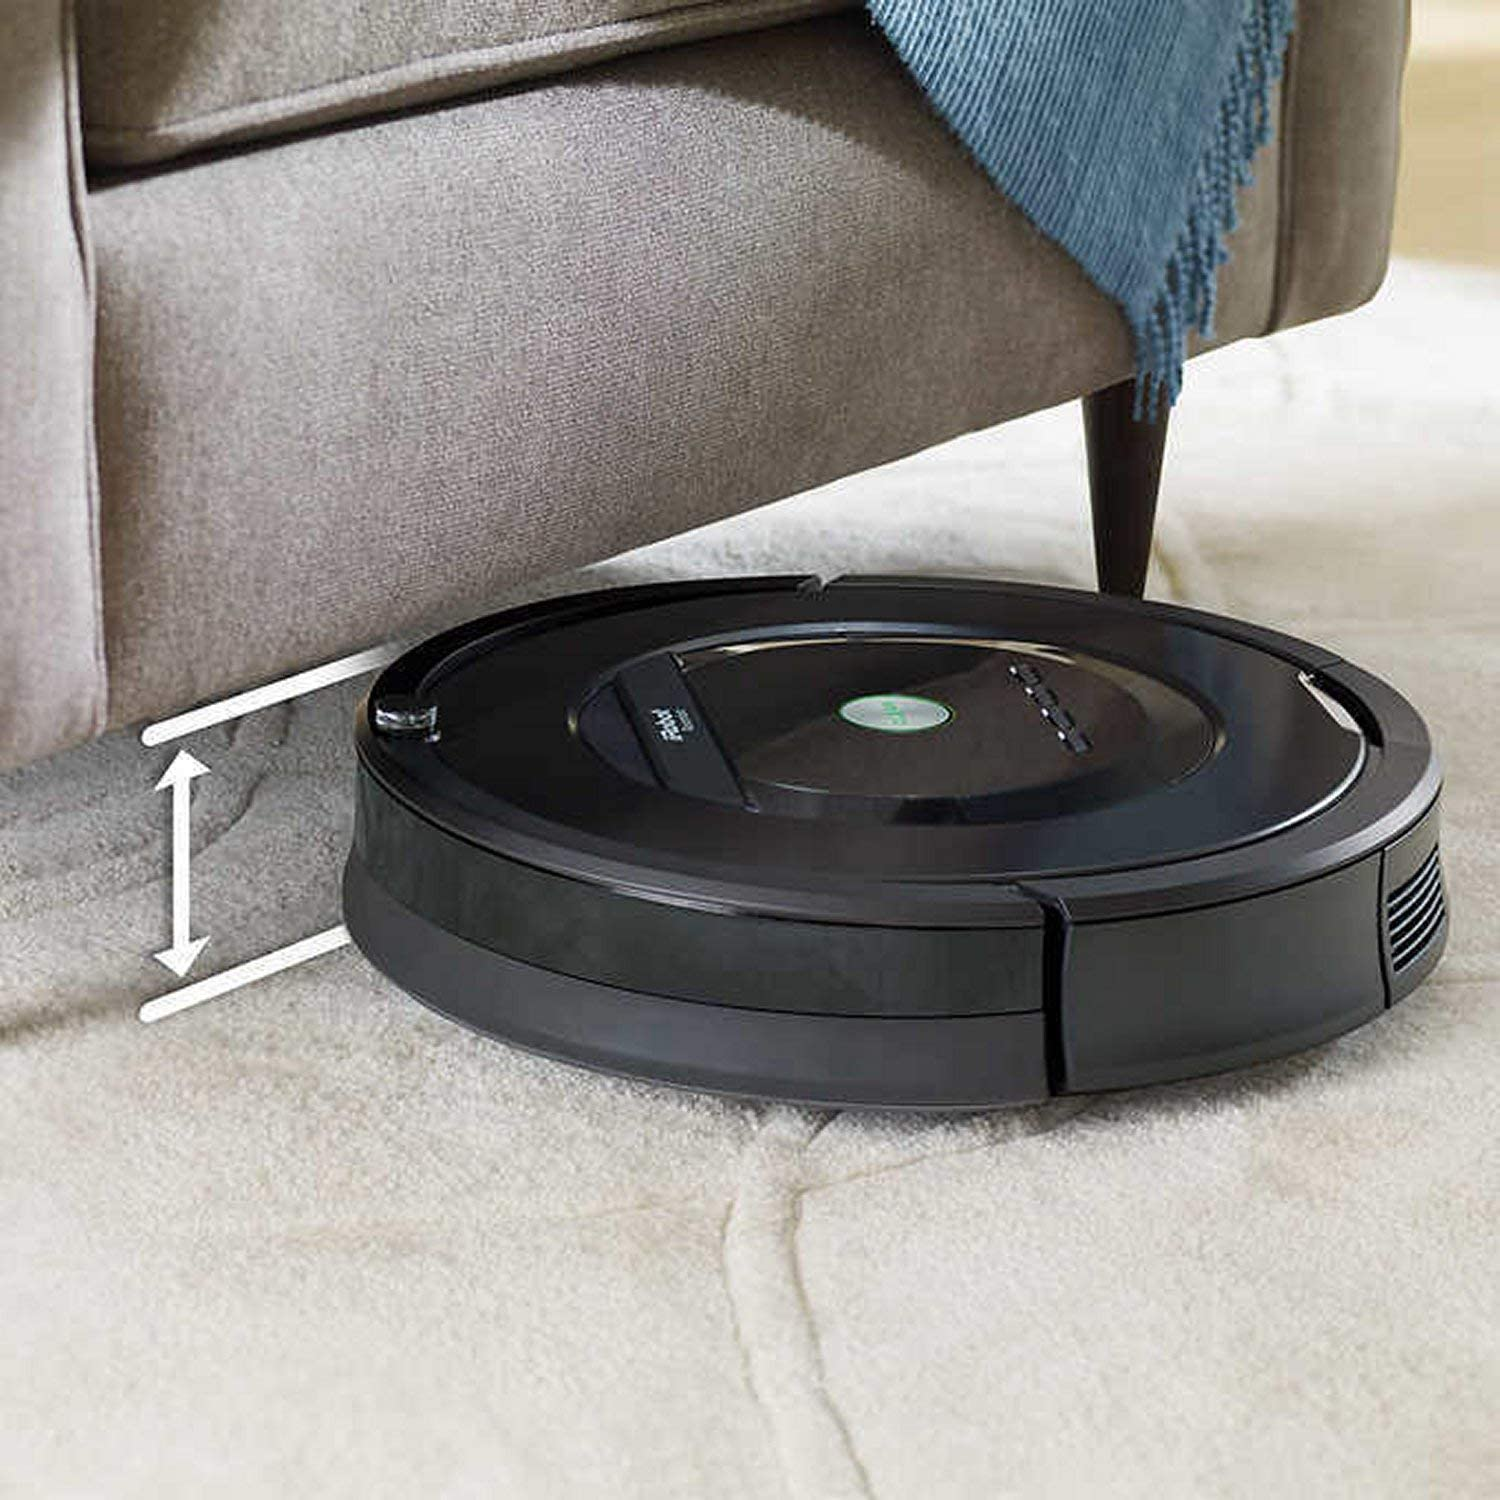 iRobot Roomba Cleaning Vacuum Robot